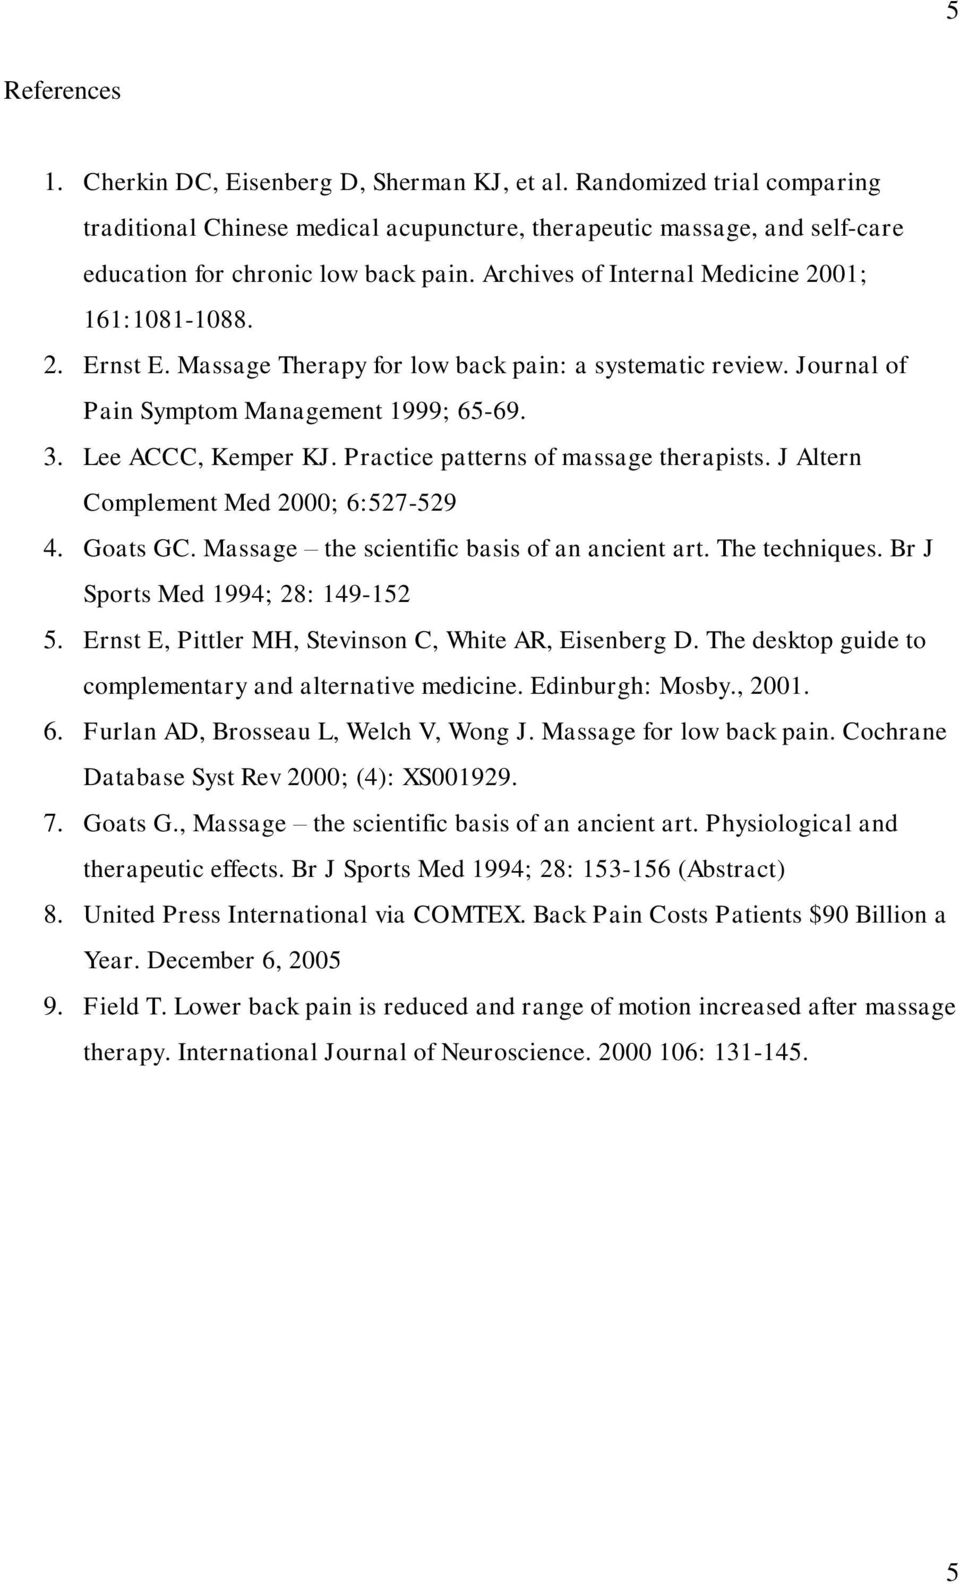 Practice patterns of massage therapists. J Altern Complement Med 2000; 6:527-529 4. Goats GC. Massage the scientific basis of an ancient art. The techniques. Br J Sports Med 1994; 28: 149-152 5.